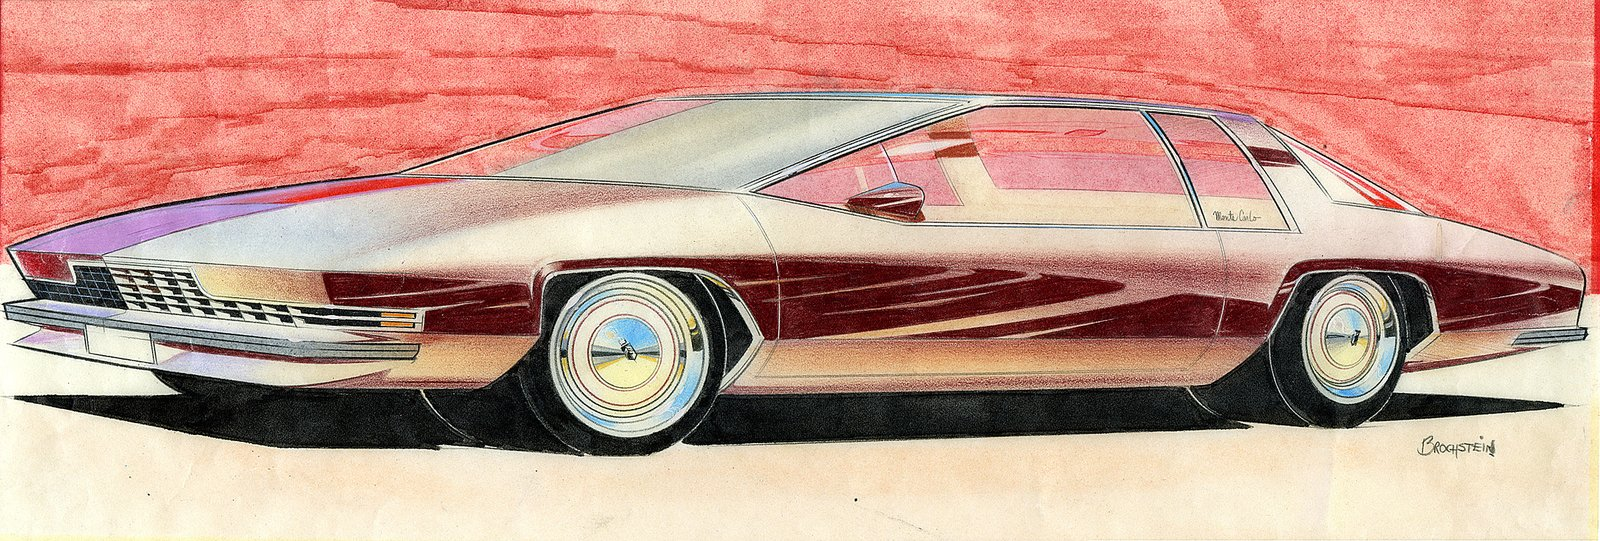 Terry Brochstein, Design for Chevrolet Monte Carlo, c. 1970.  Photo 5 of 7 in When the Future Had Fins: Fantastical Vintage Auto Drawings